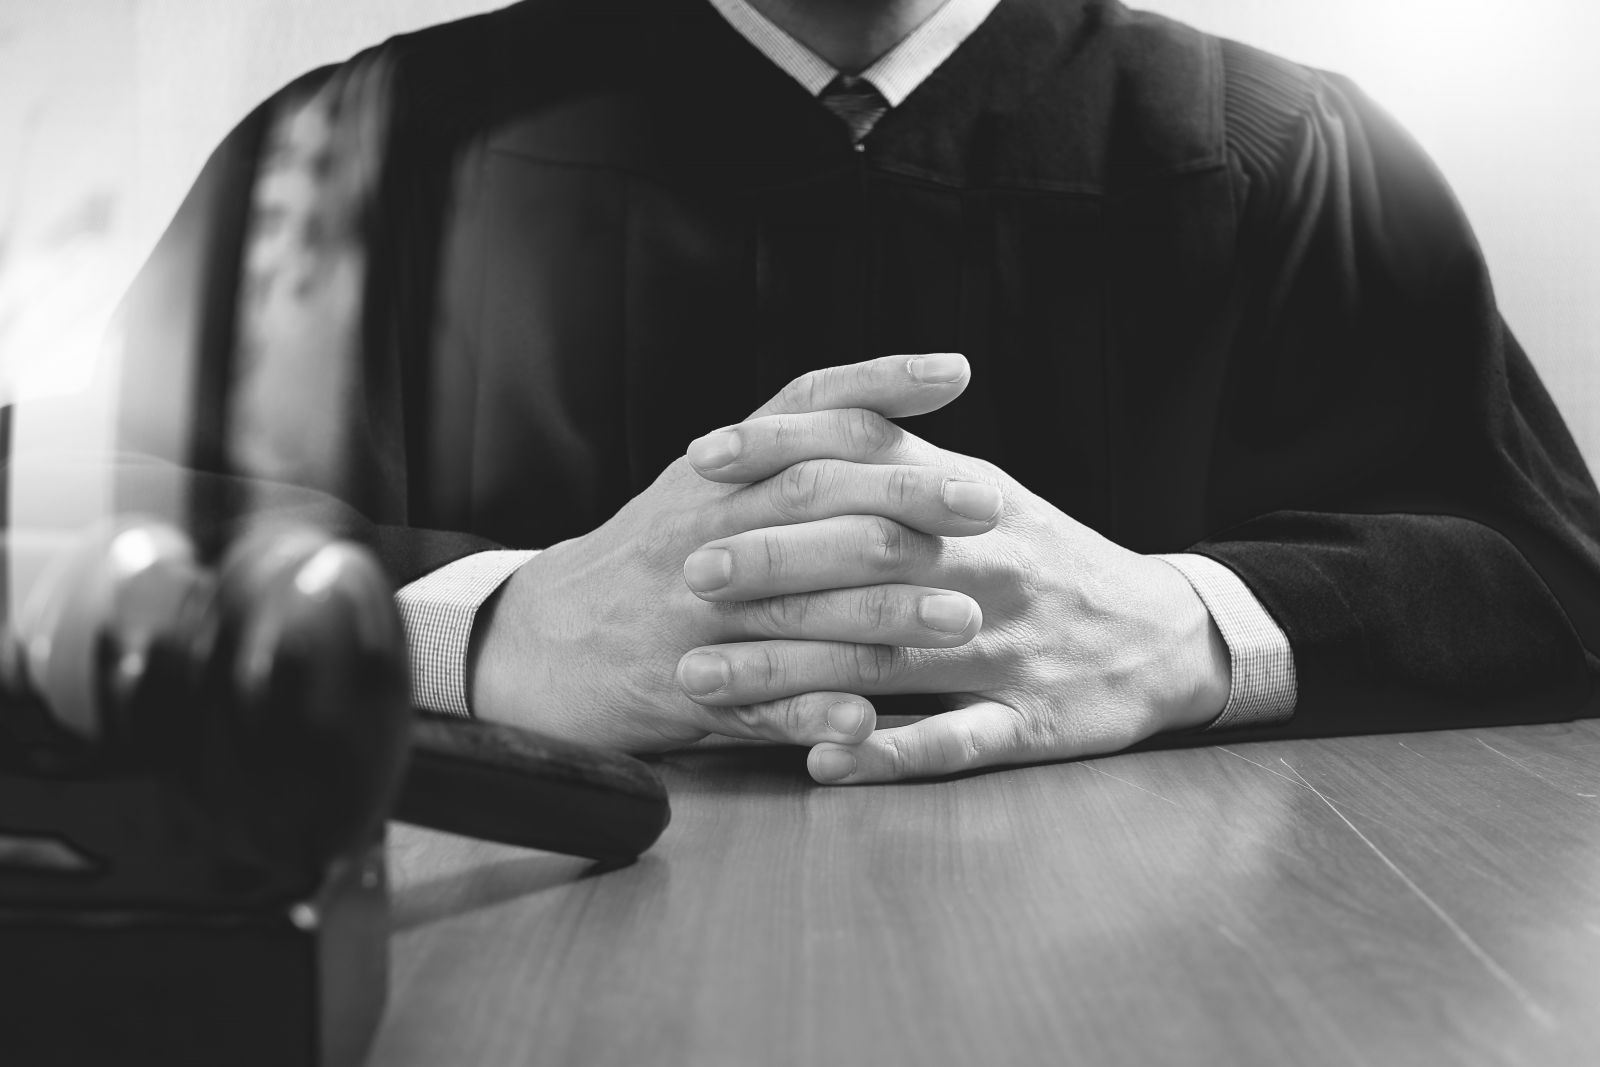 Male judge in a courtroom striking the gavel,working with digital tablet computer docking keyboard. Justice and law concept banner image